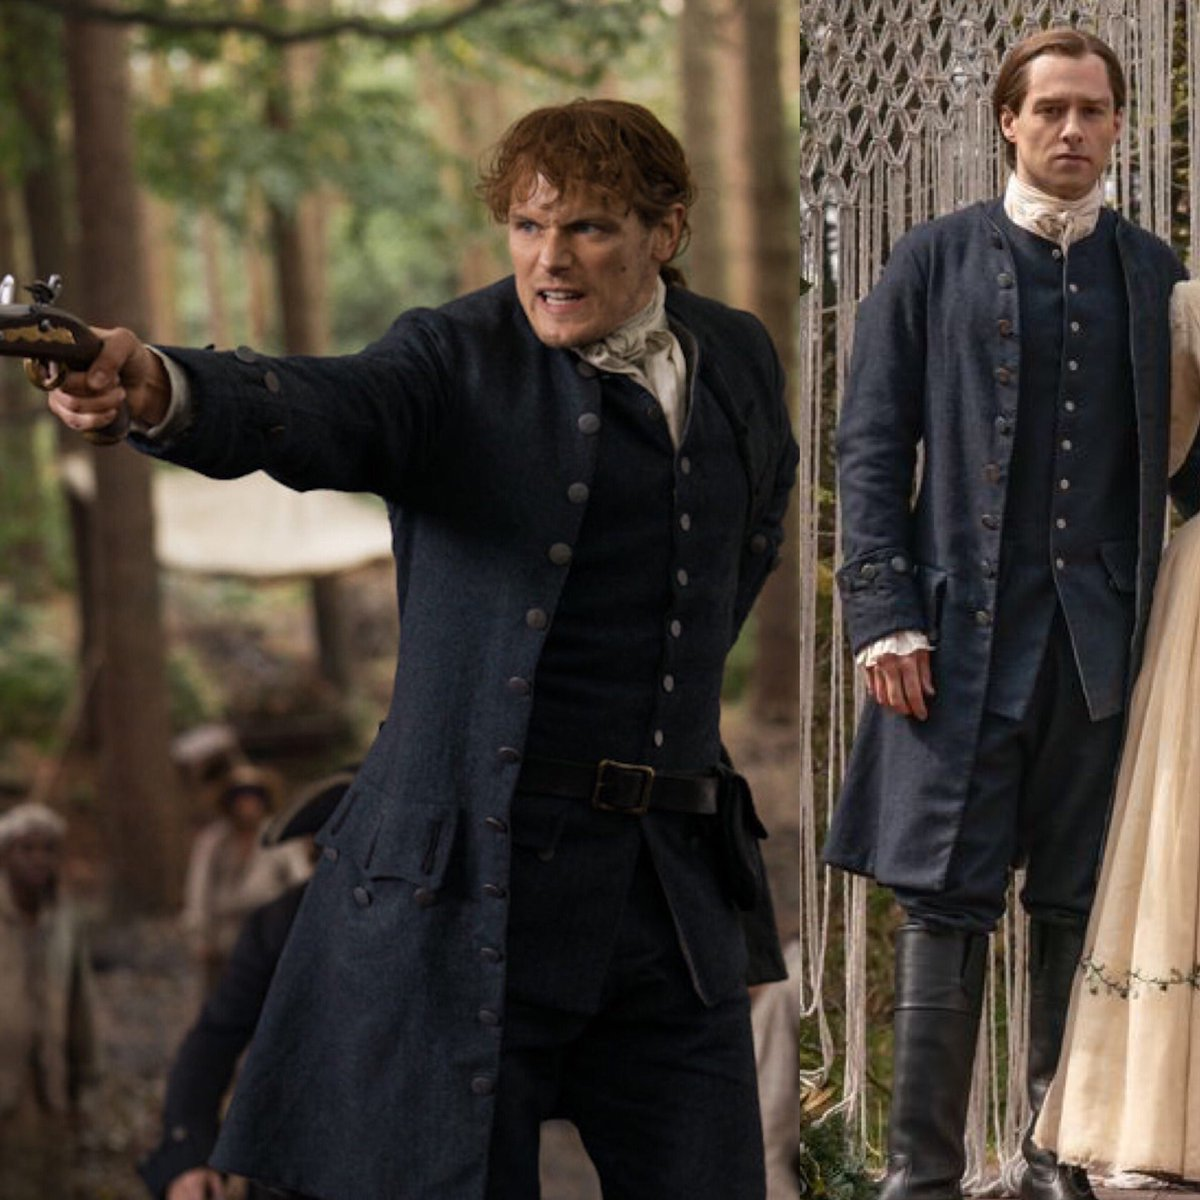 The awesome folks @Outlander_STARZ gave us some S5E1 tidbits today and one was how @SamHeughan and @RikRankin wore the same outfit in different seasons. I obviously obsessed over this today and voila, I give you #TheFrasers a season apart.  #OutlanderS5 #bestcostumes ❤️